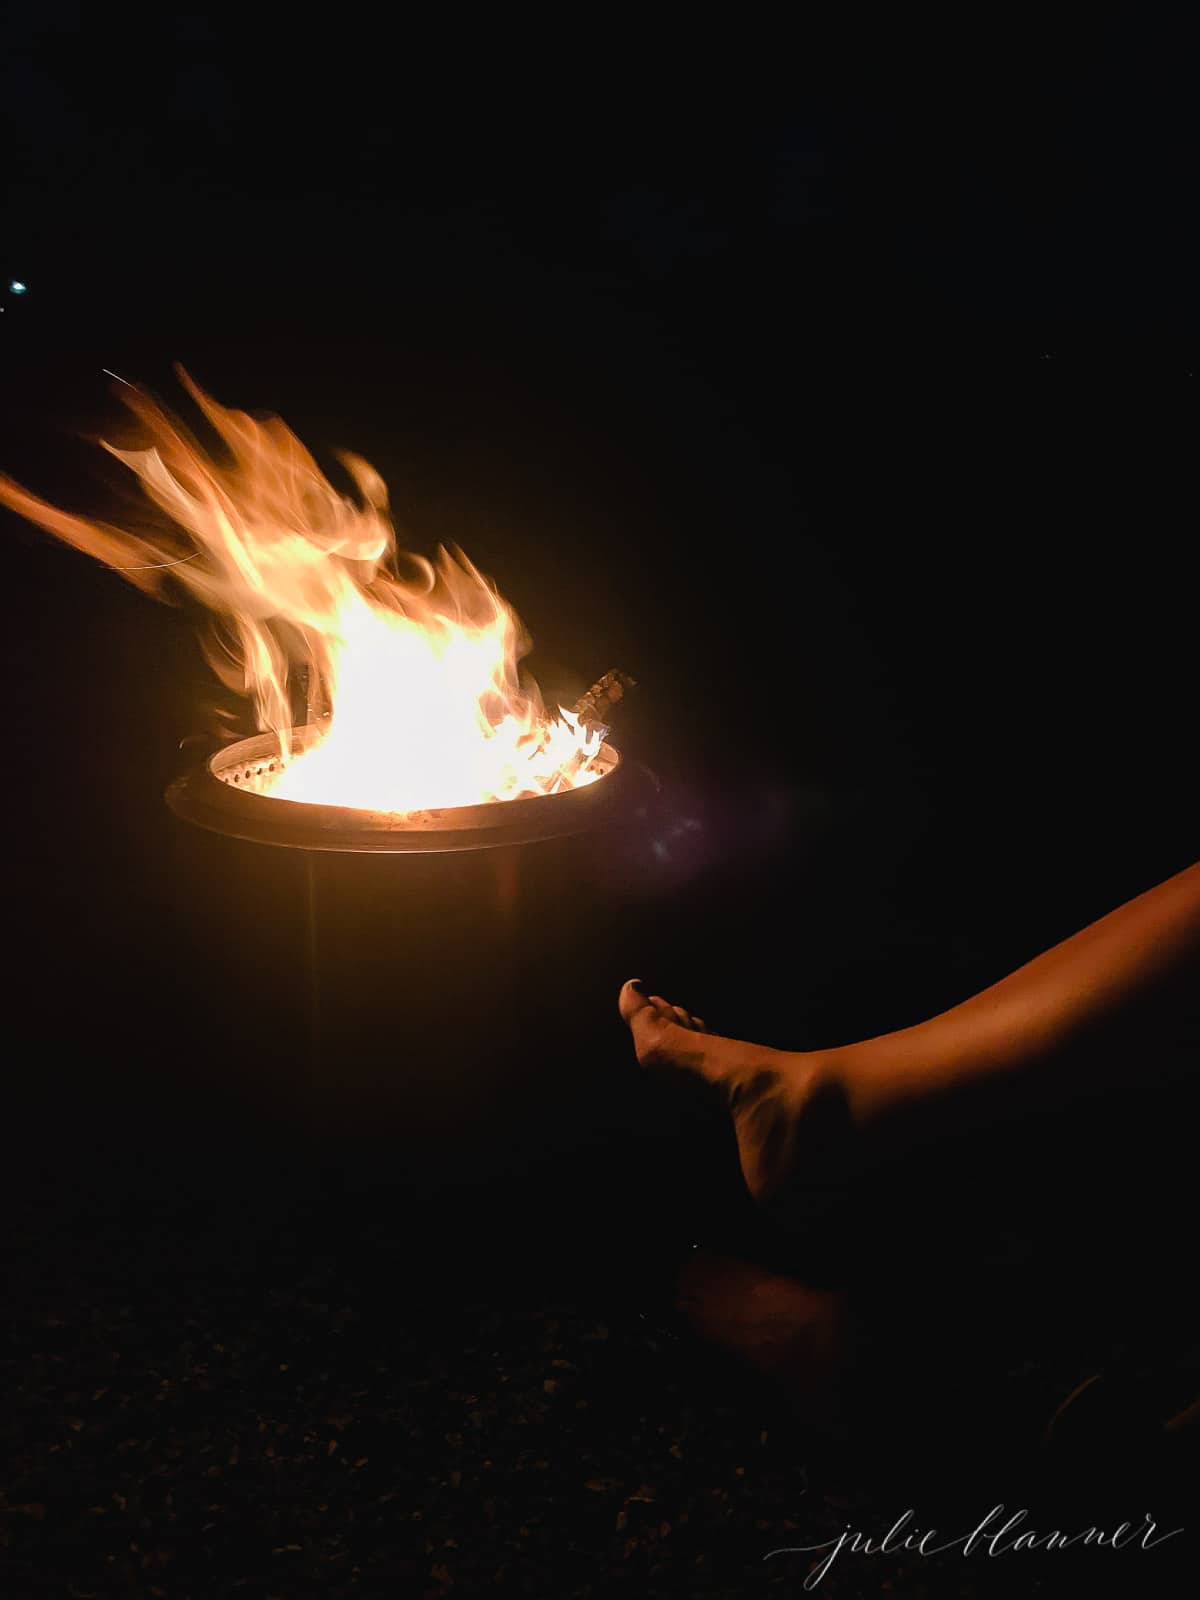 foot by fire pit